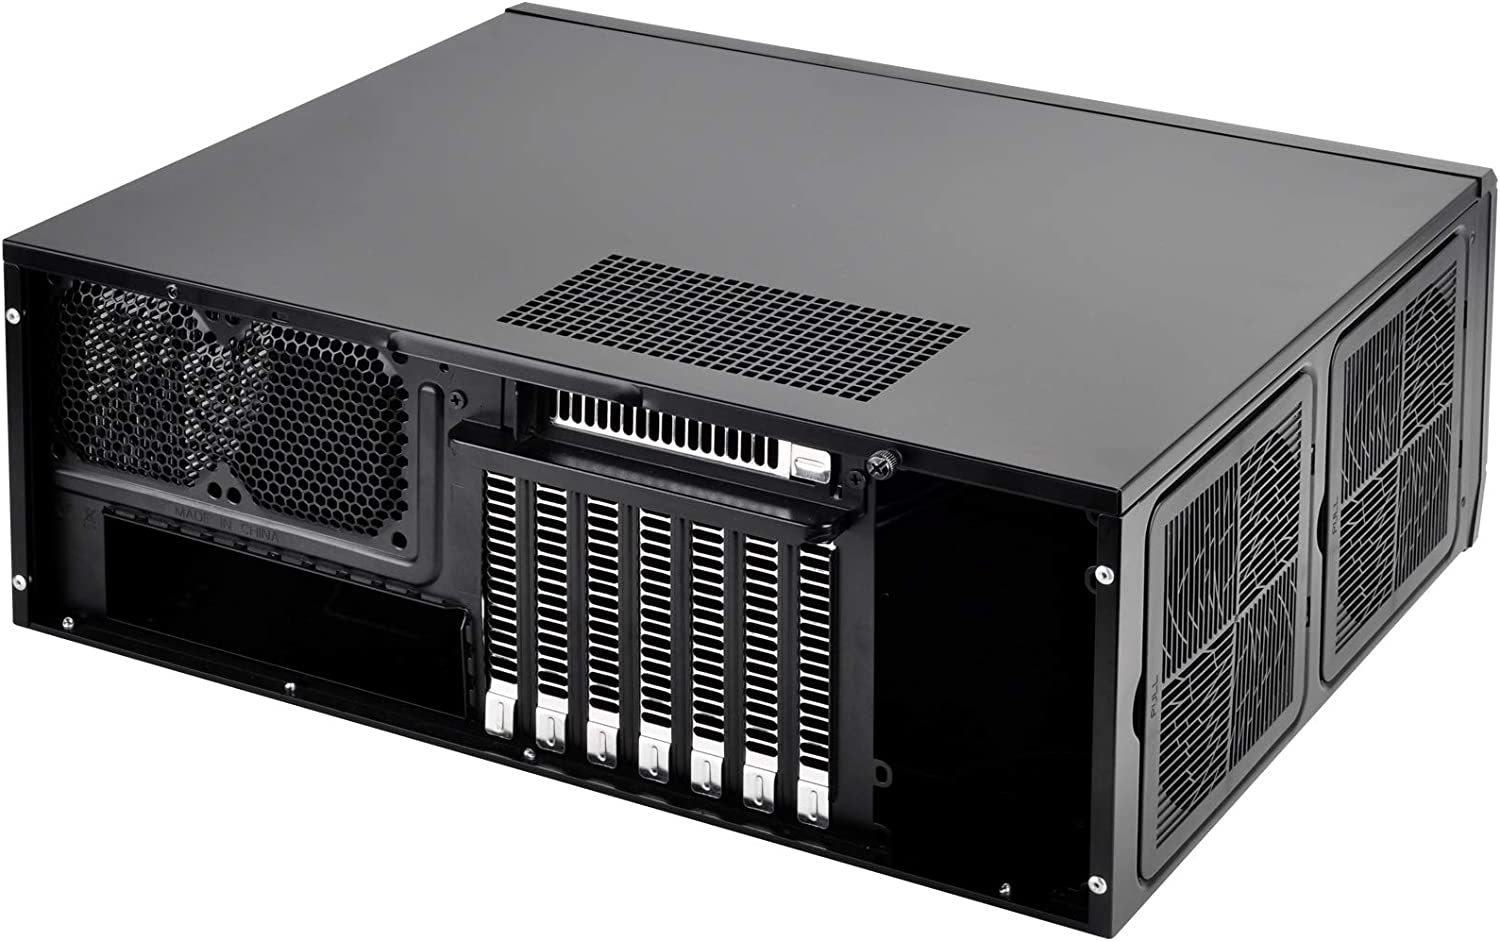 SilverStone Technology SST-GD10B-USA Home Theater Computer Case HTPC with Lockable Front Panel for ATX//Micro-ATX Motherboards GD10B-USA